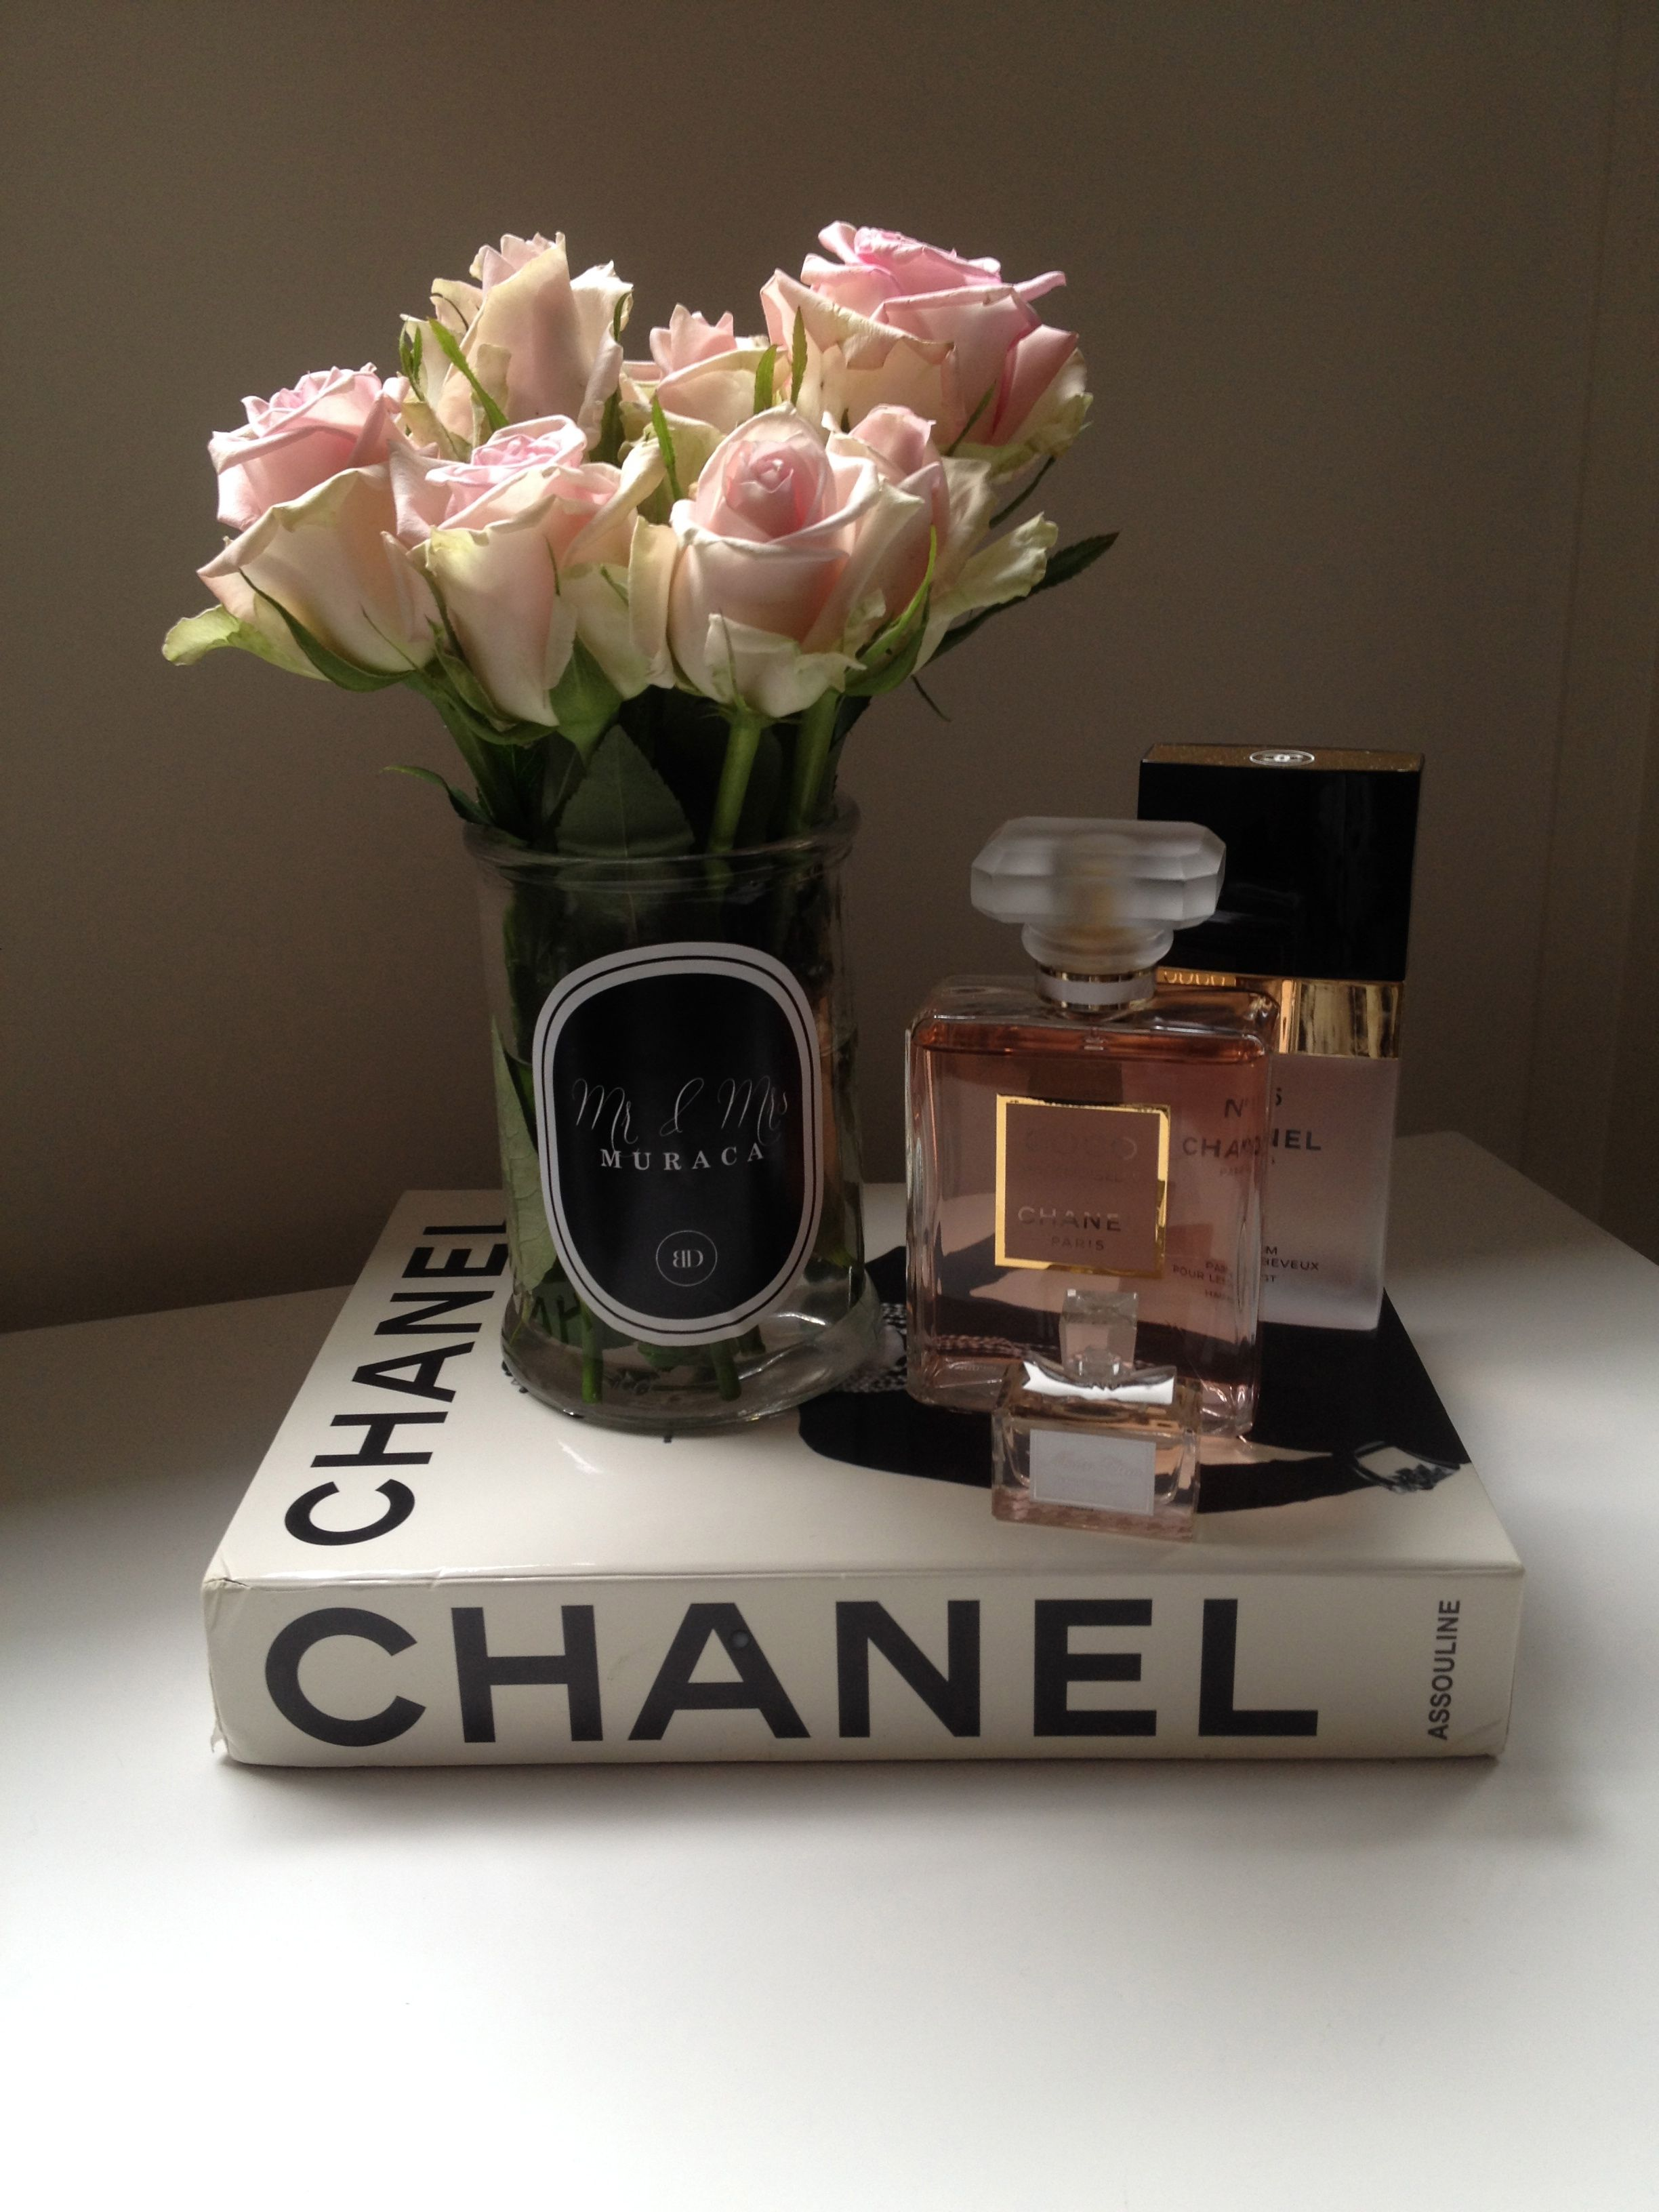 Livre Chanel Deco Pink White Roses Chanel Book Chanel Madam Mademoiselle